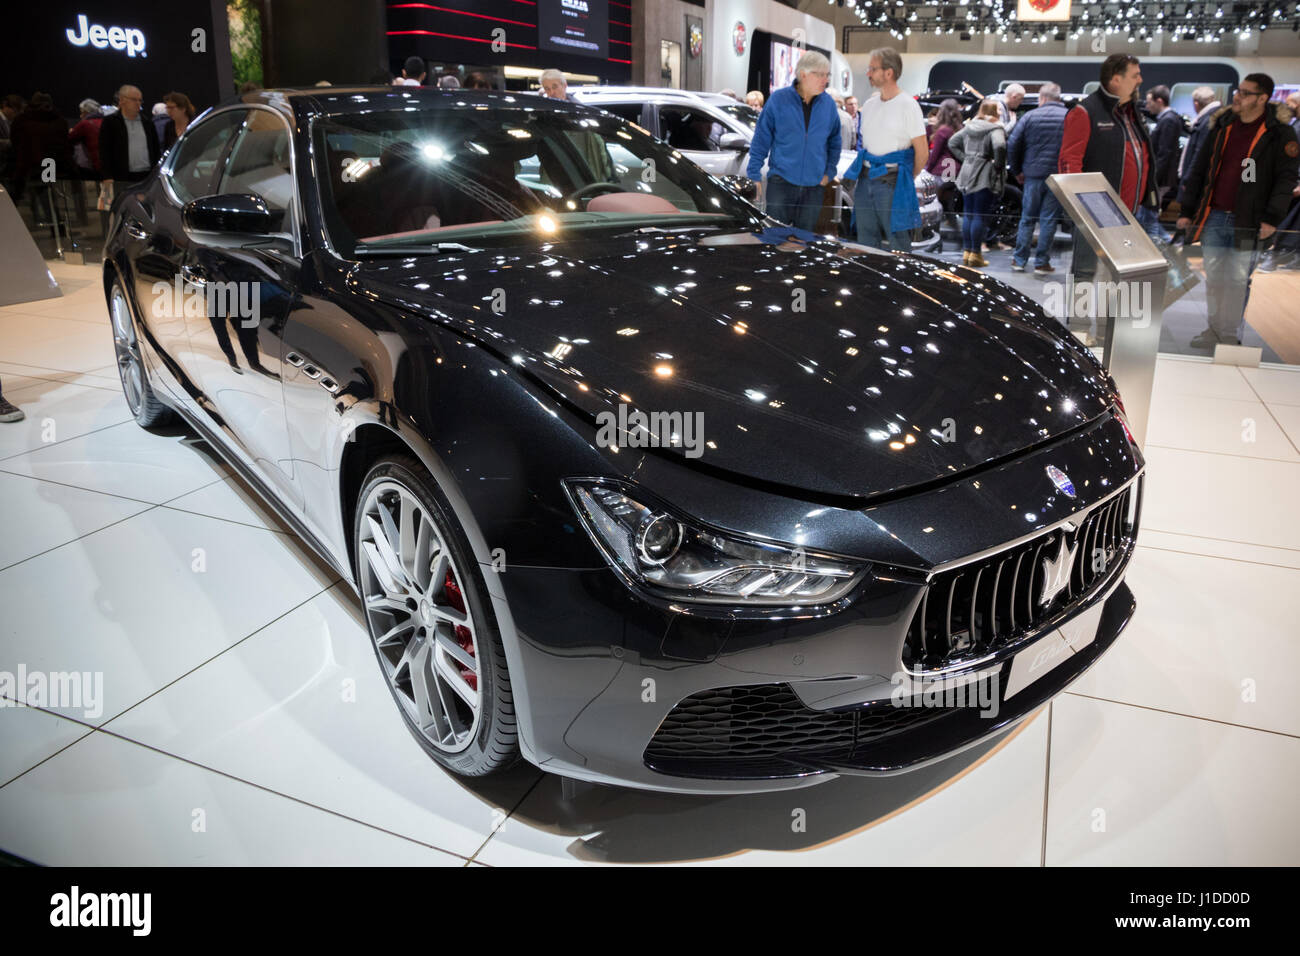 BRUSSELS - JAN 19, 2017: Maserati Ghibli car at the Brussels Motor Show. - Stock Image